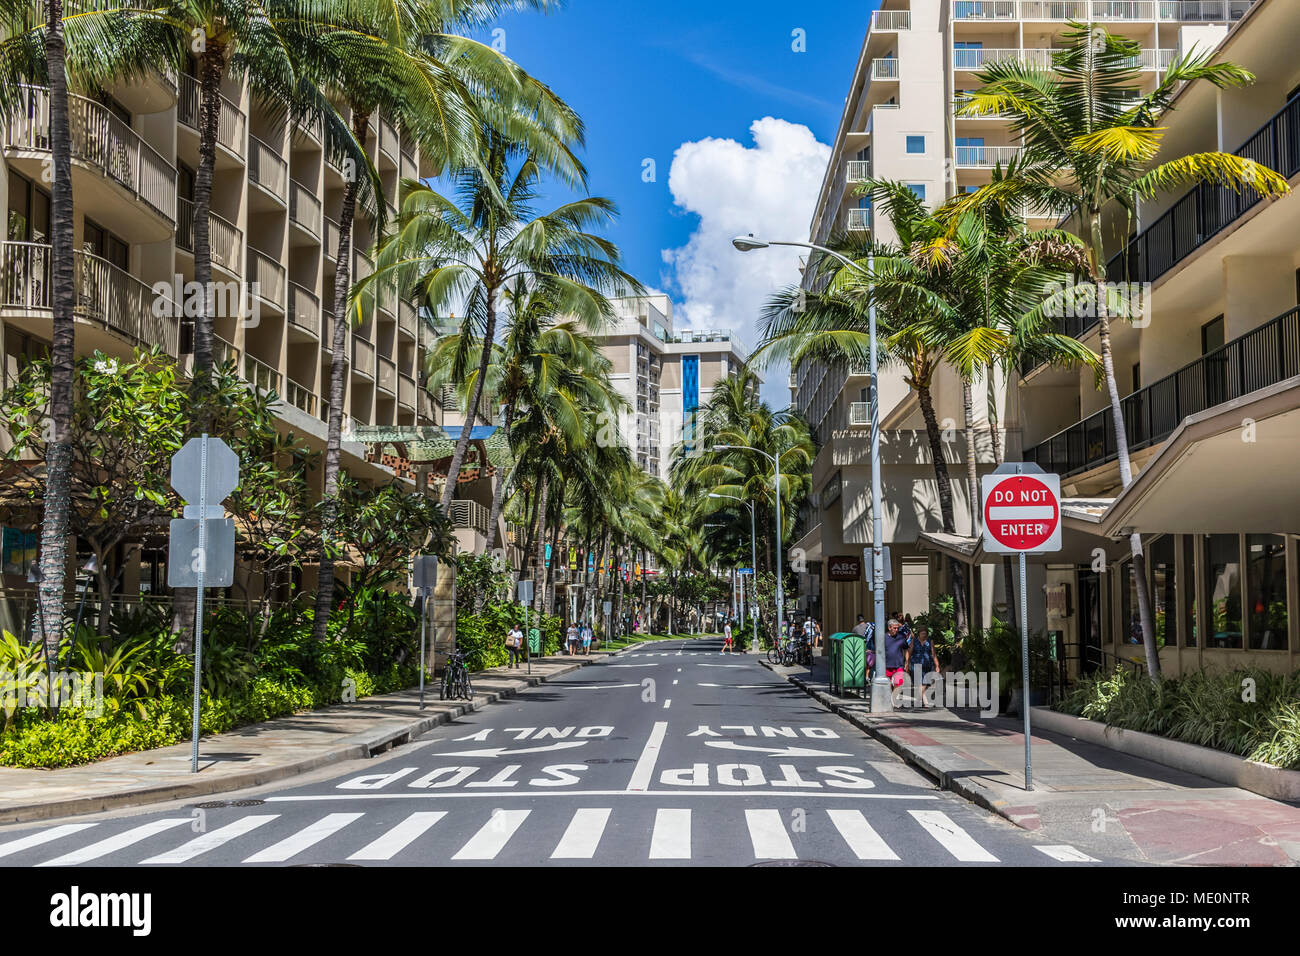 Looking up Levers Street from Kaila Road with Imperial Hawaii Resort at right, Waikiki; Honolulu, Oahu, Hawaii, United States of America - Stock Image